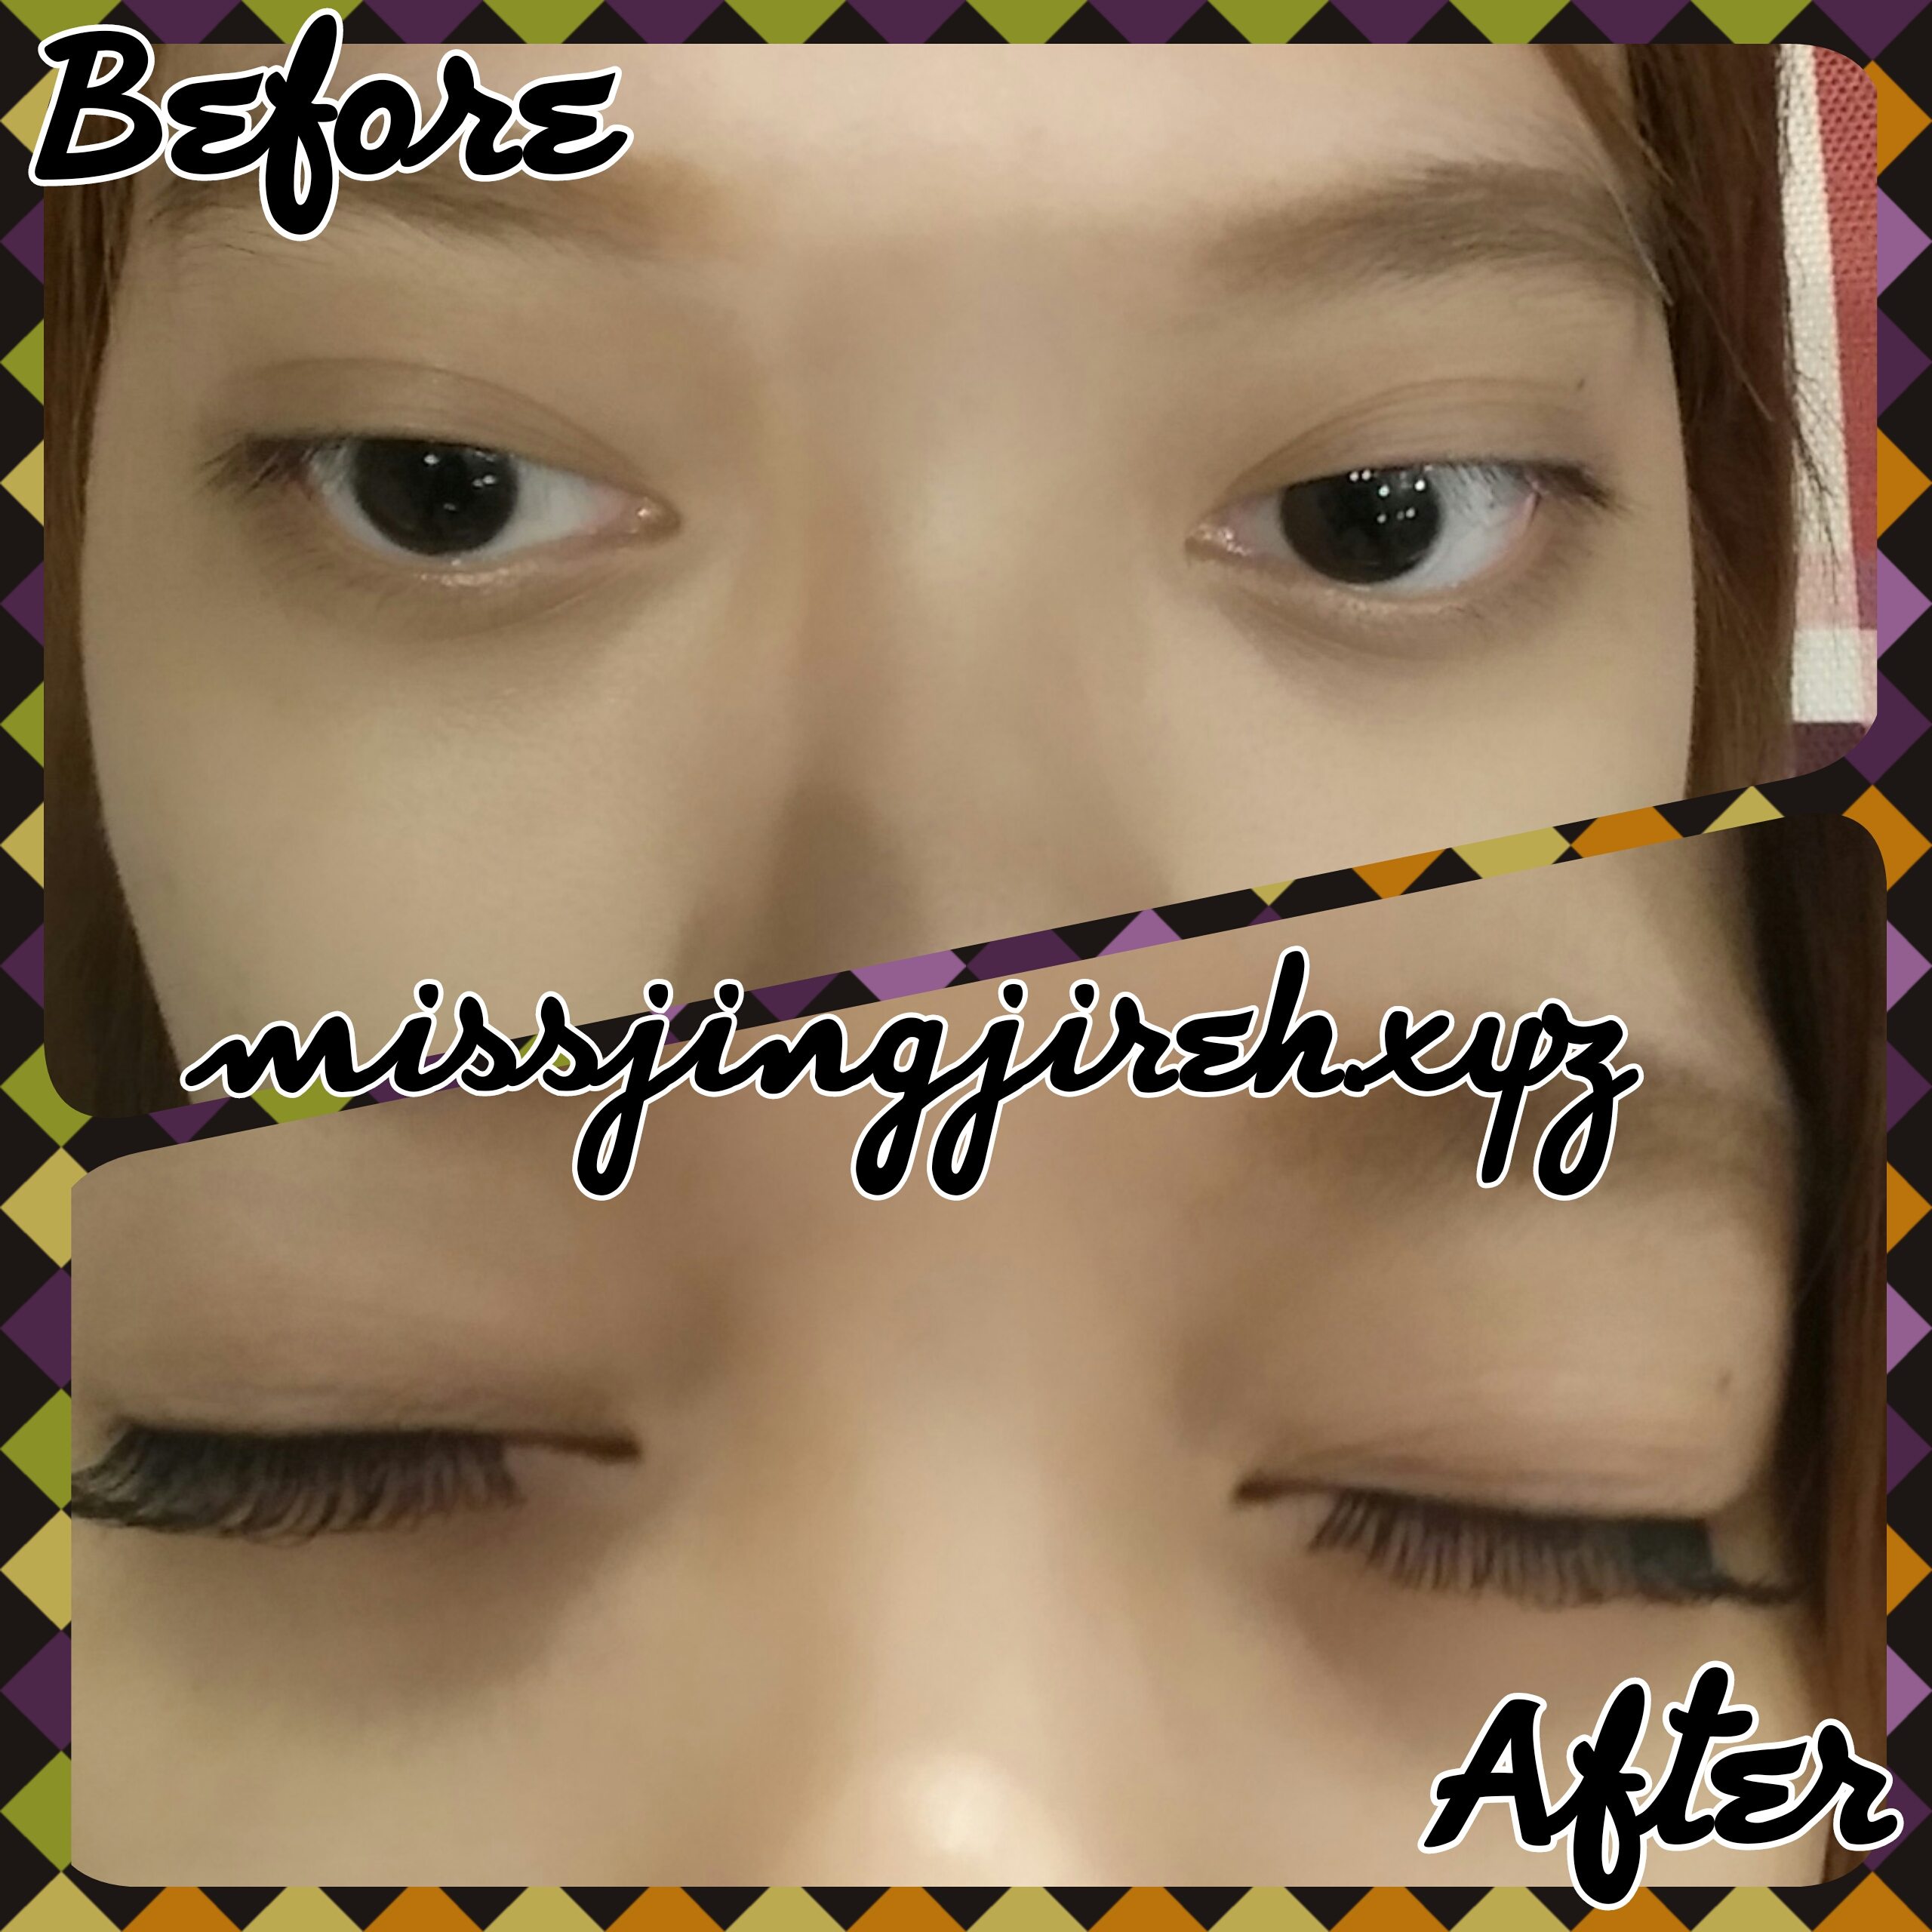 bf66d662c4e Quick comparison of before and after shots. The extensions made my lashes  look fuller and